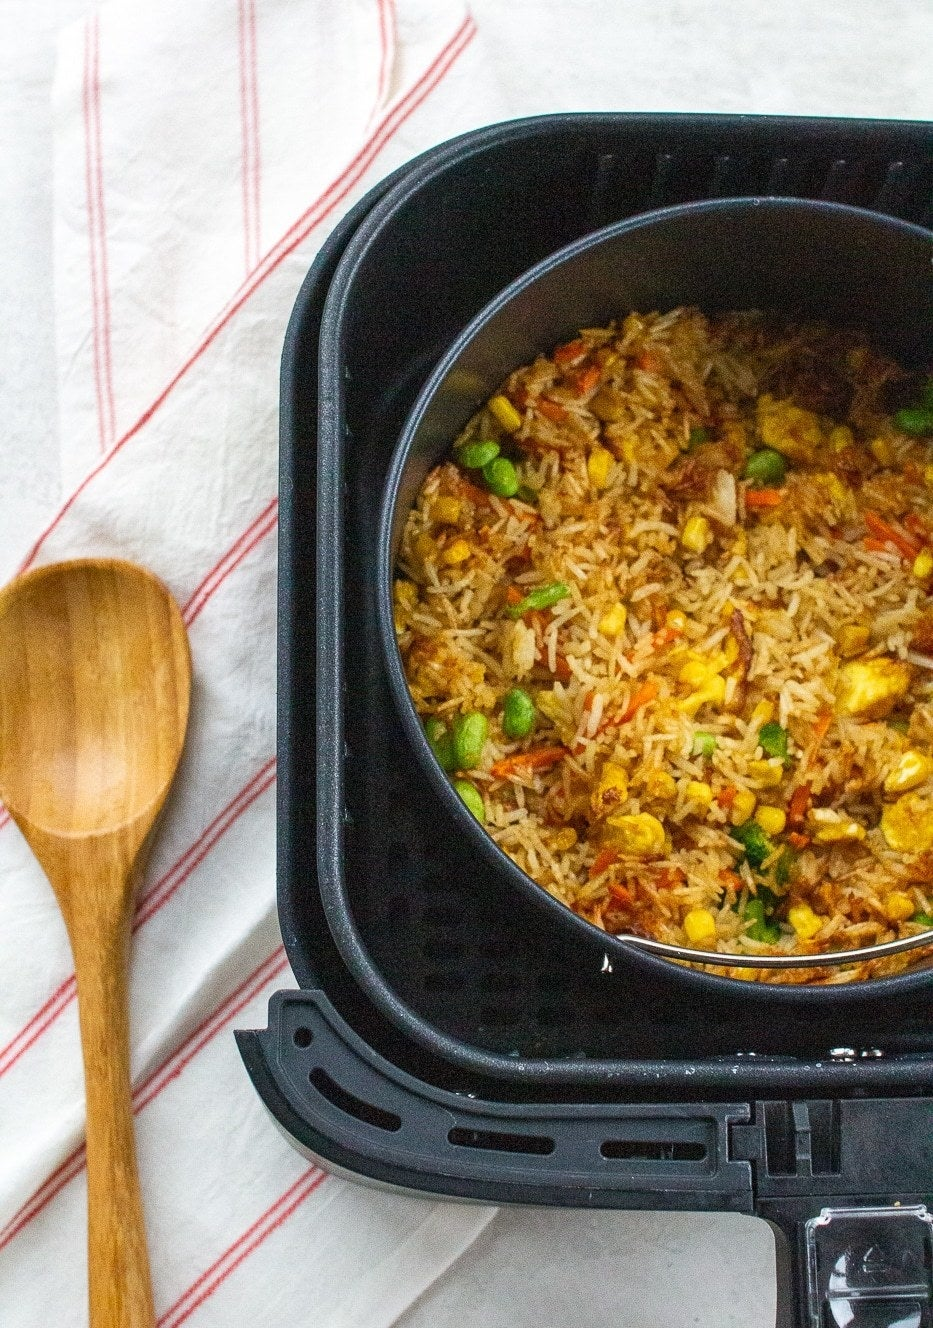 Fried rice cooking in a baking dish in the basket of an air fryer.